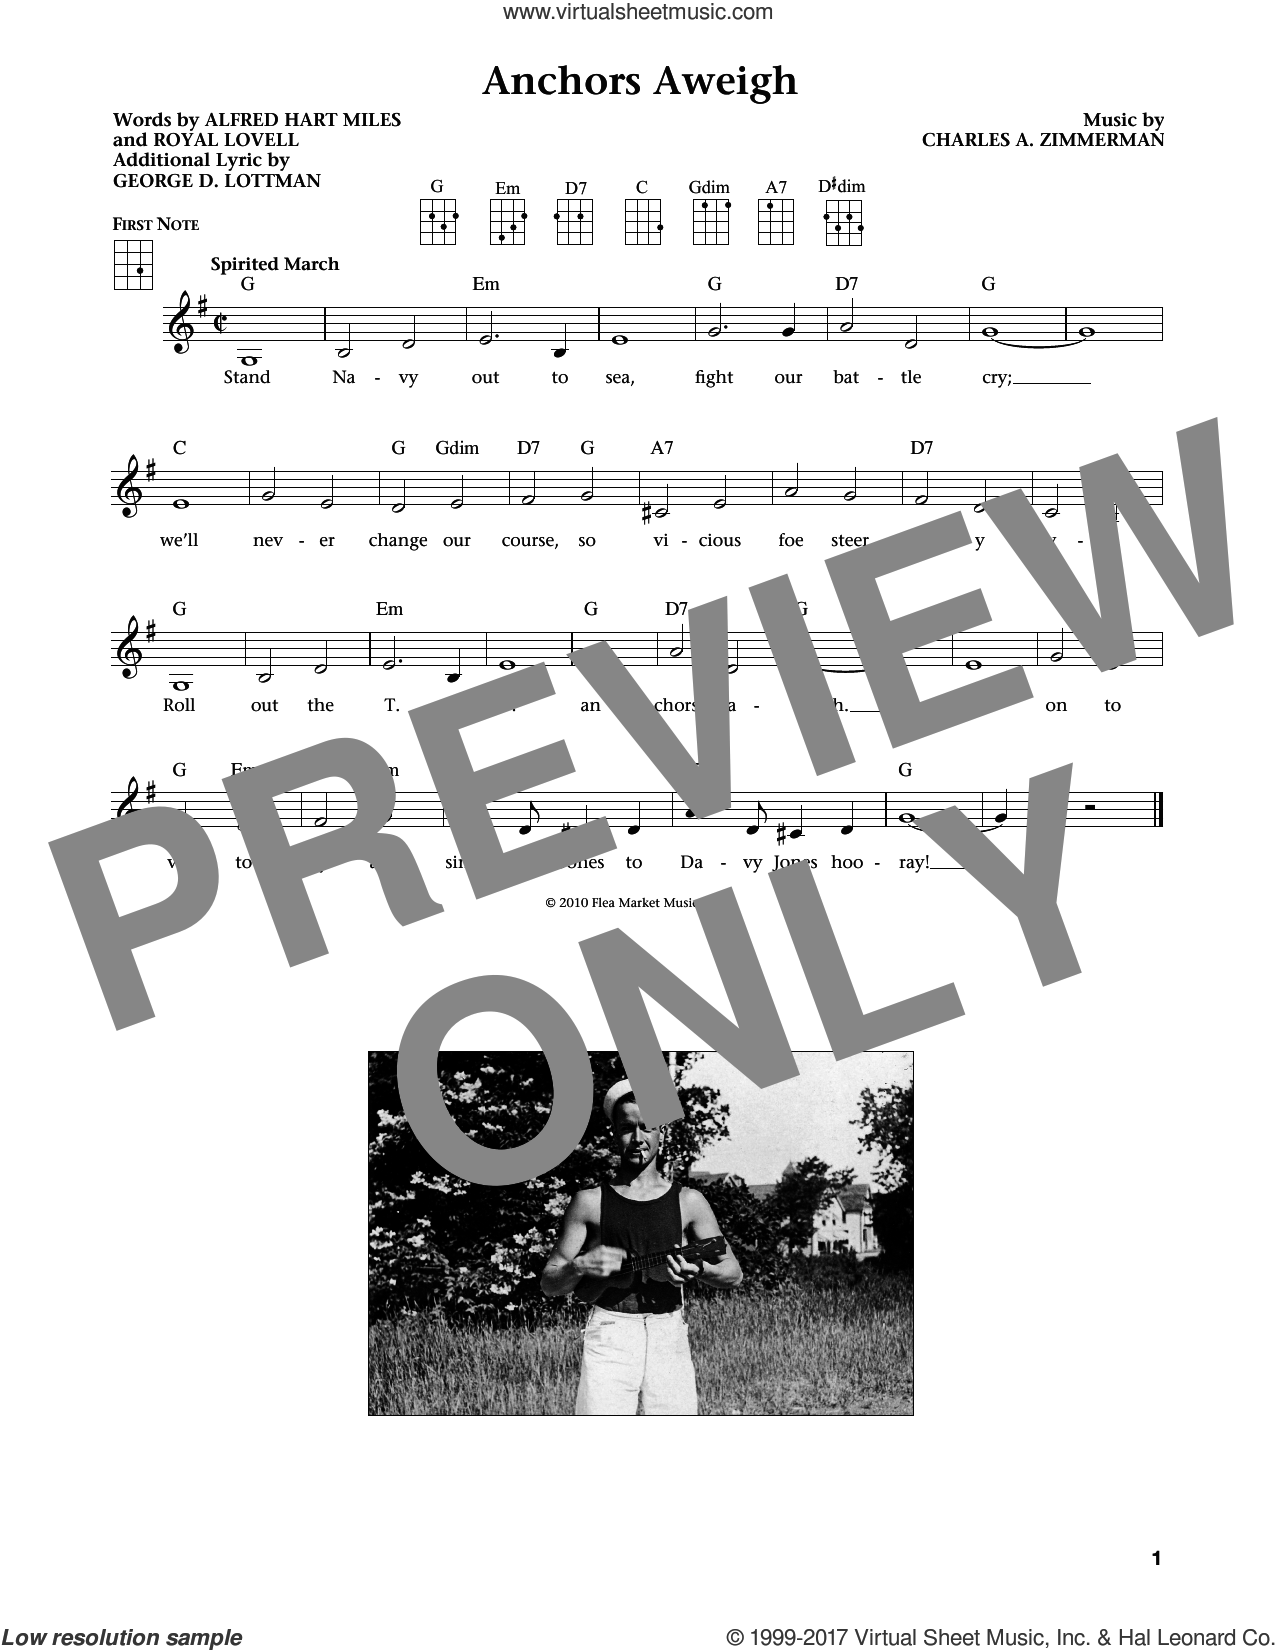 Anchors Aweigh sheet music for ukulele by Charles A. Zimmerman, Alfred Hart Miles and George D. Lottman. Score Image Preview.